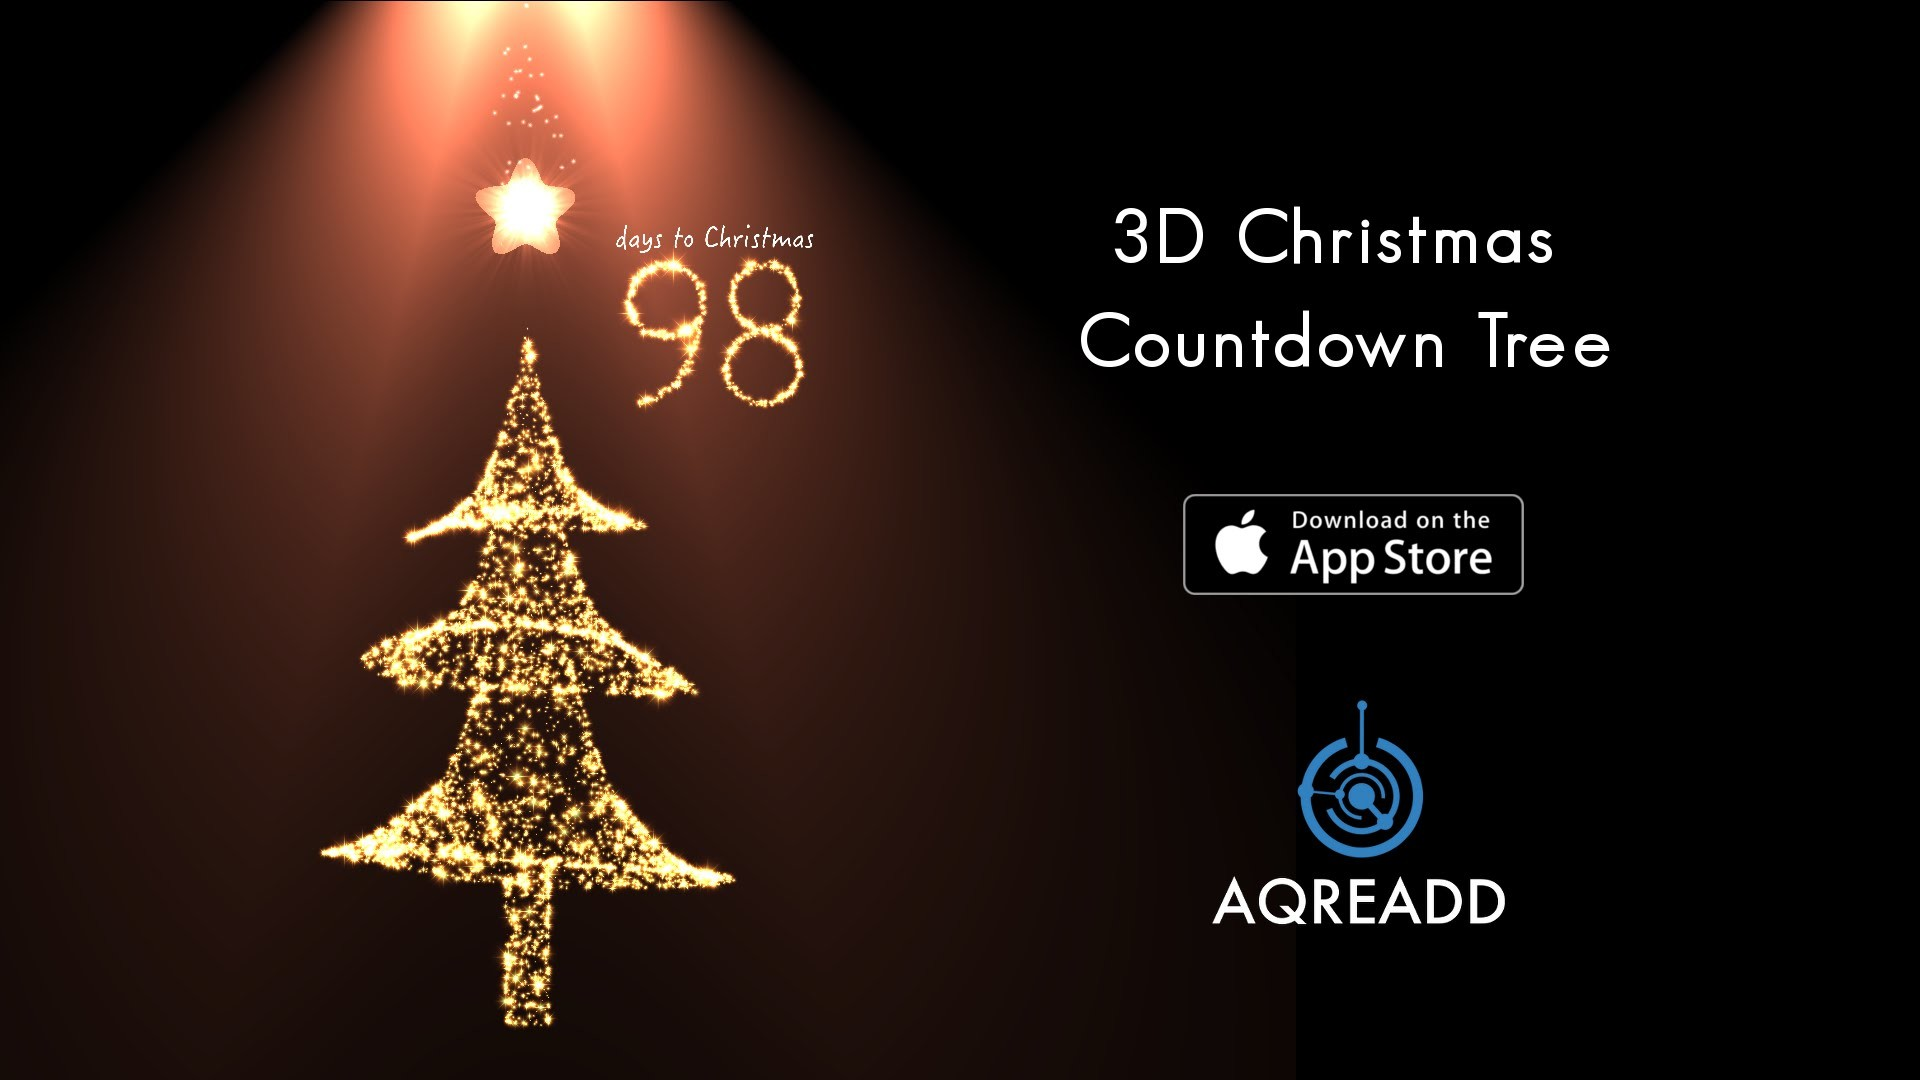 3D Christmas Countdown Tree for iPhone 6, iPhone 6 plus, iPhone 5s & iPad –  YouTube